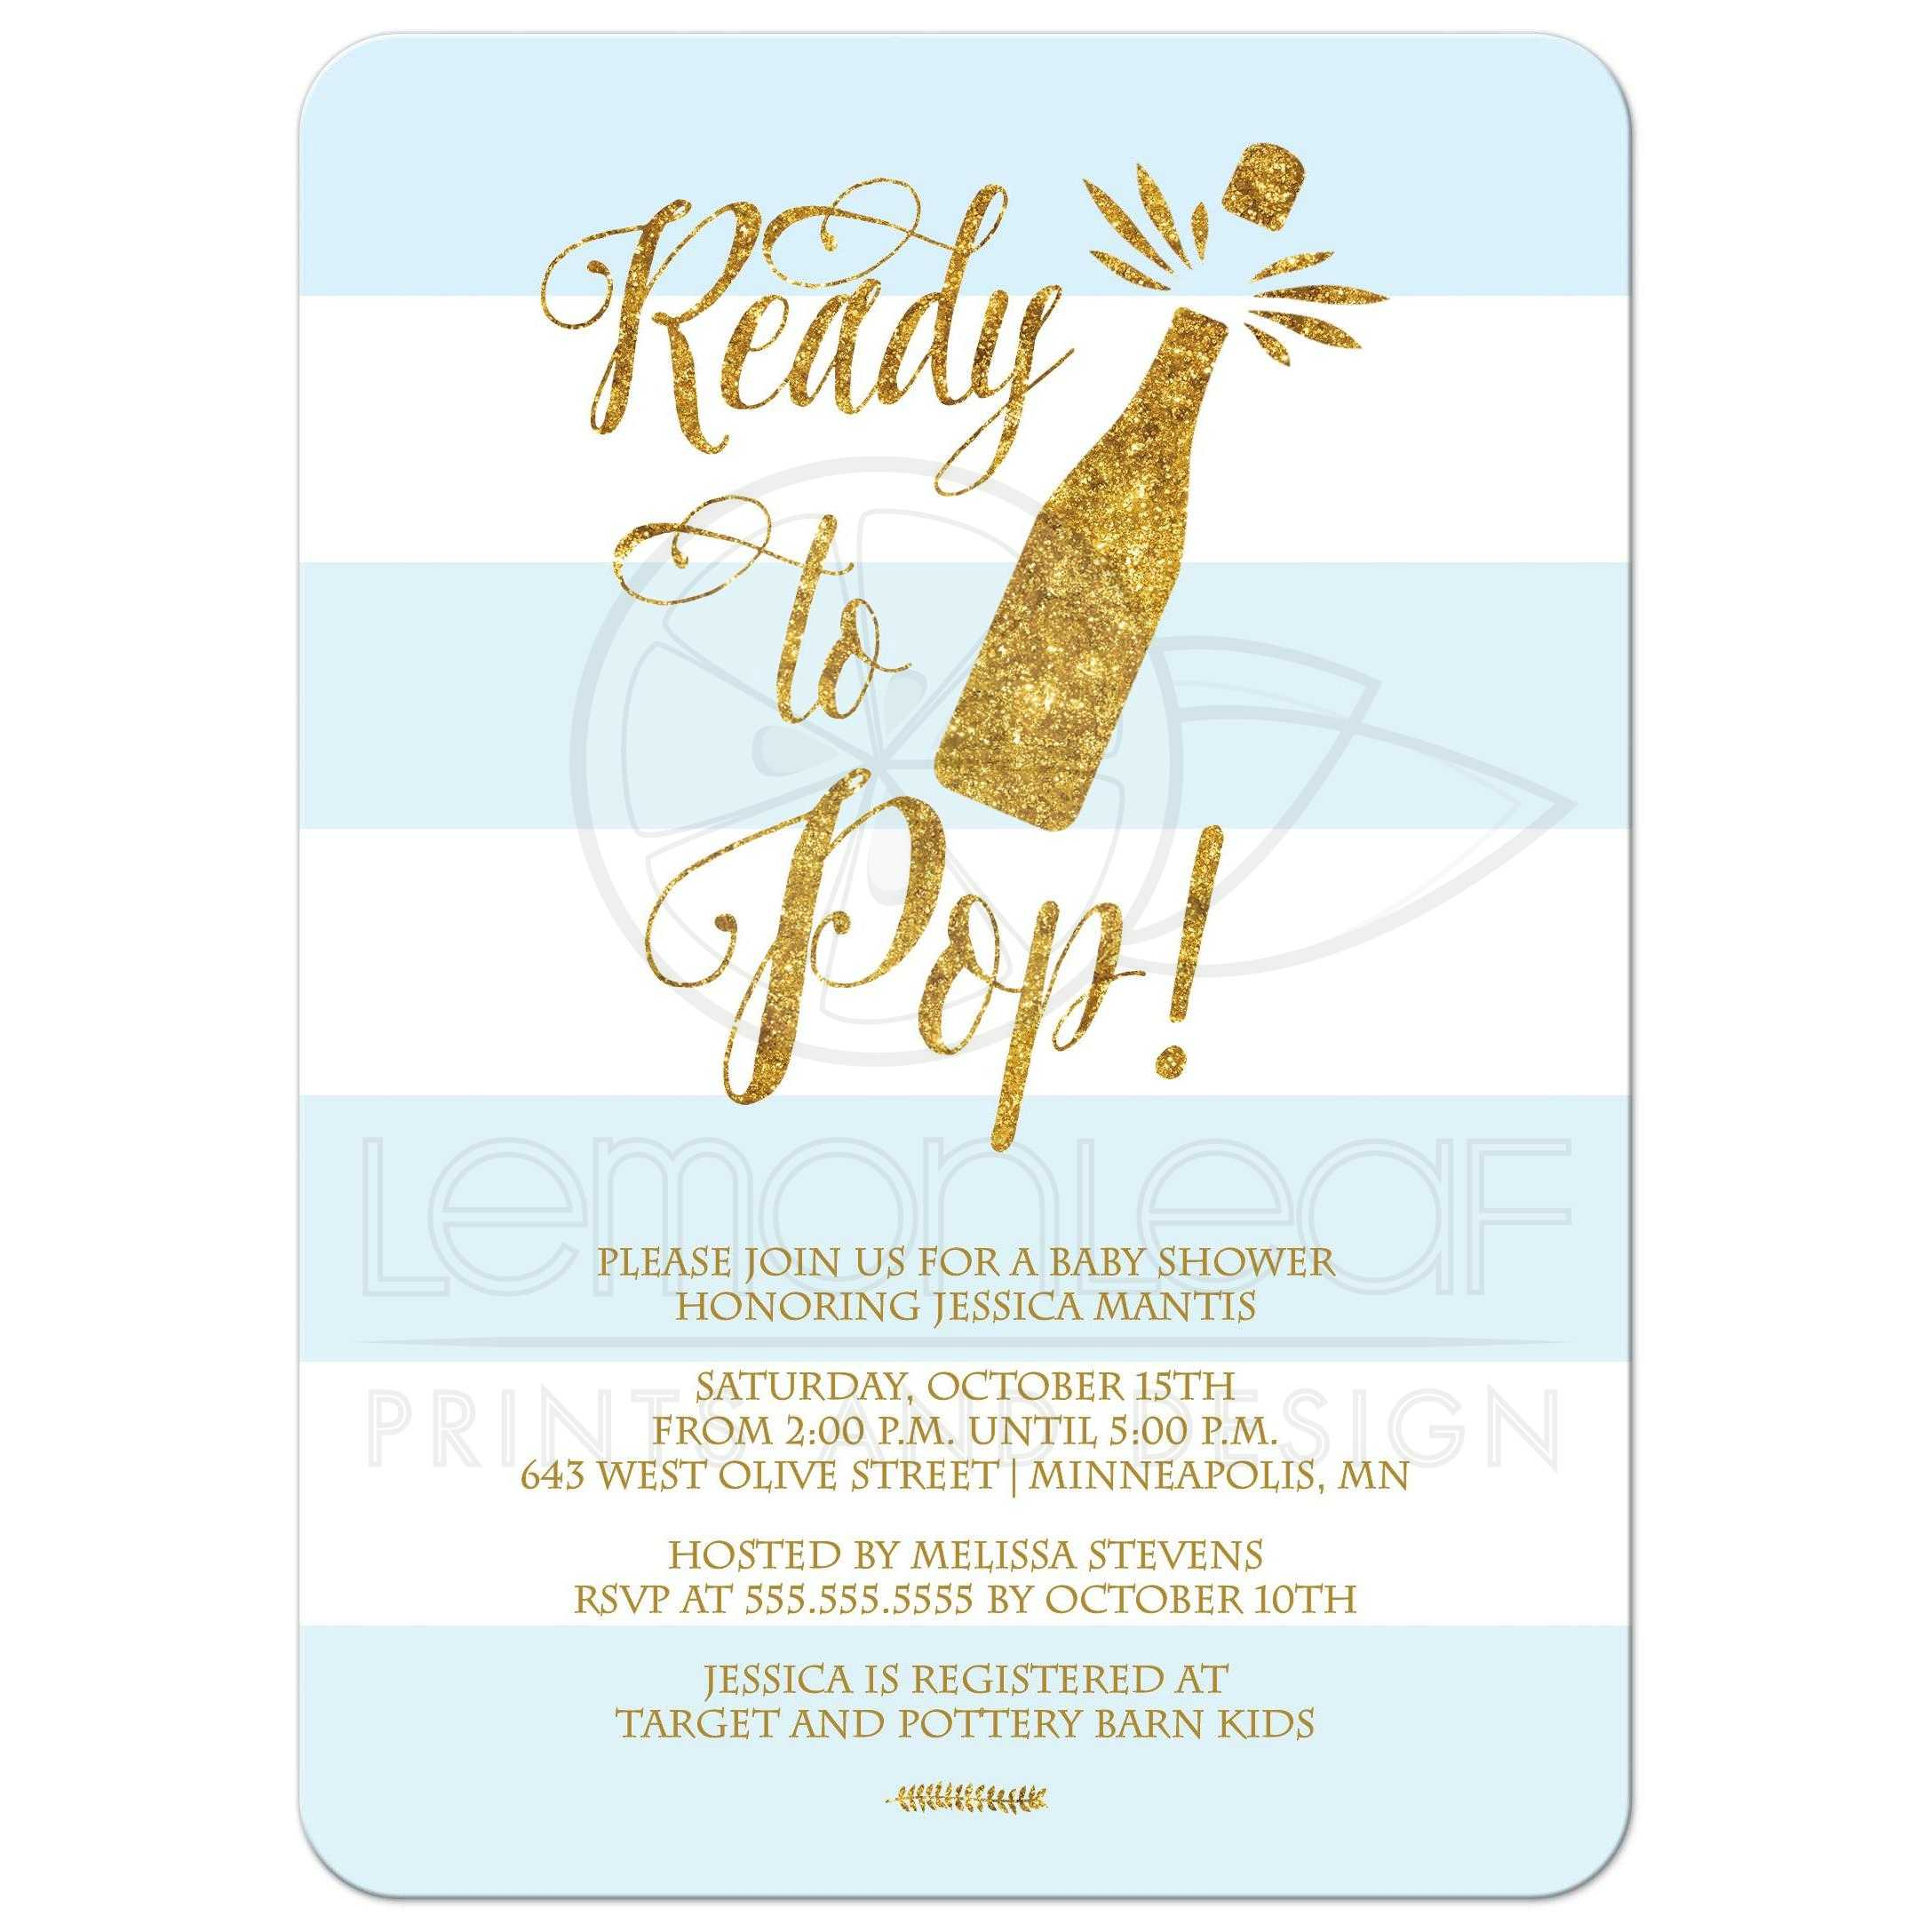 Ready to Pop Boy Baby Shower Invitation - Blue and Gold PRINTED glitter